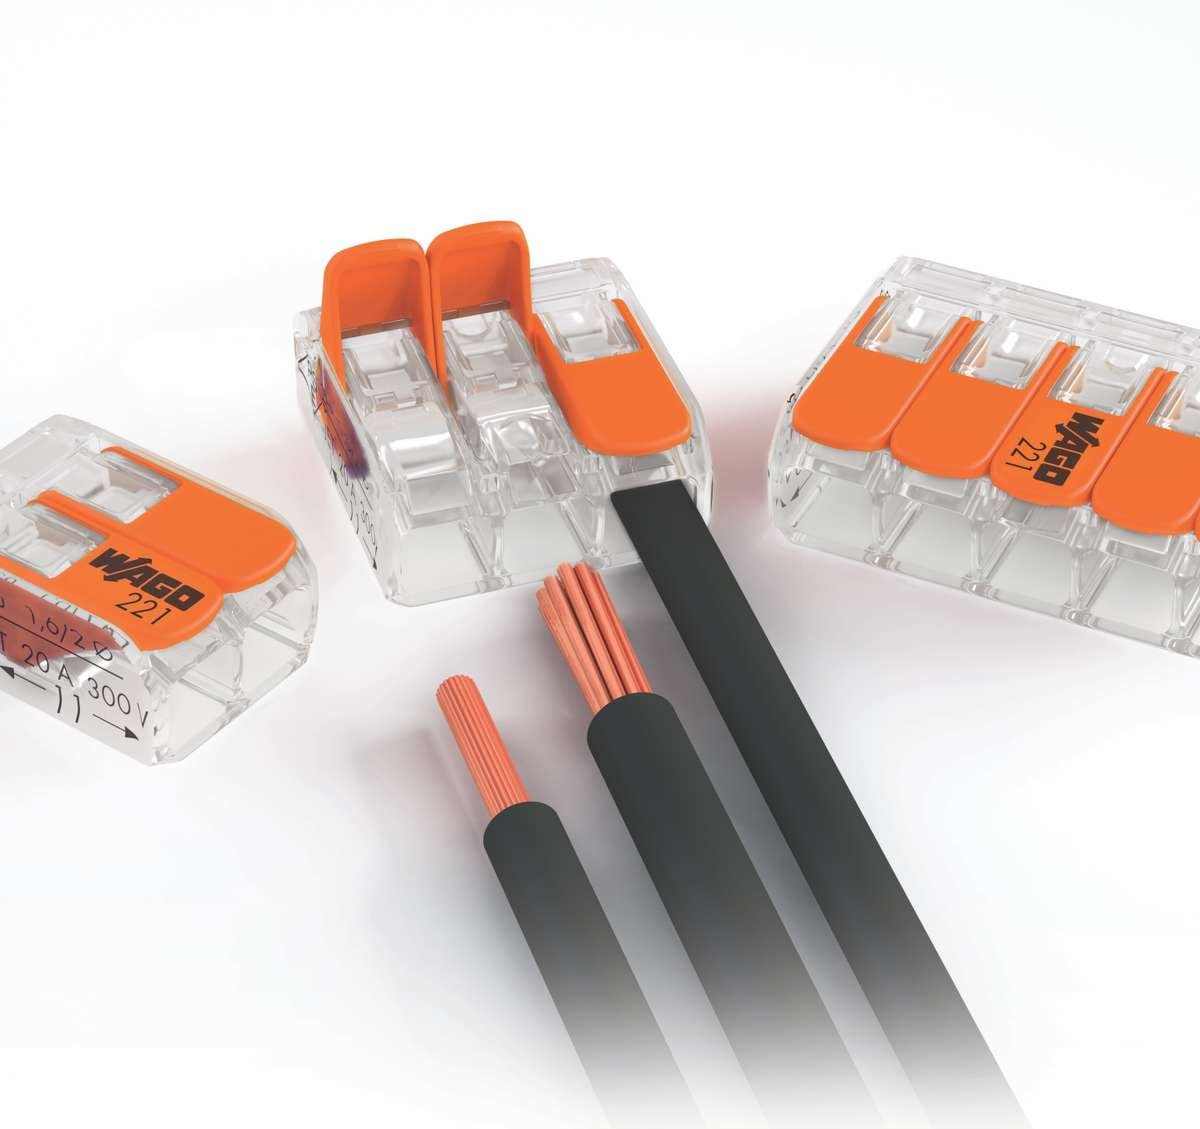 Wago Splicing Connectors